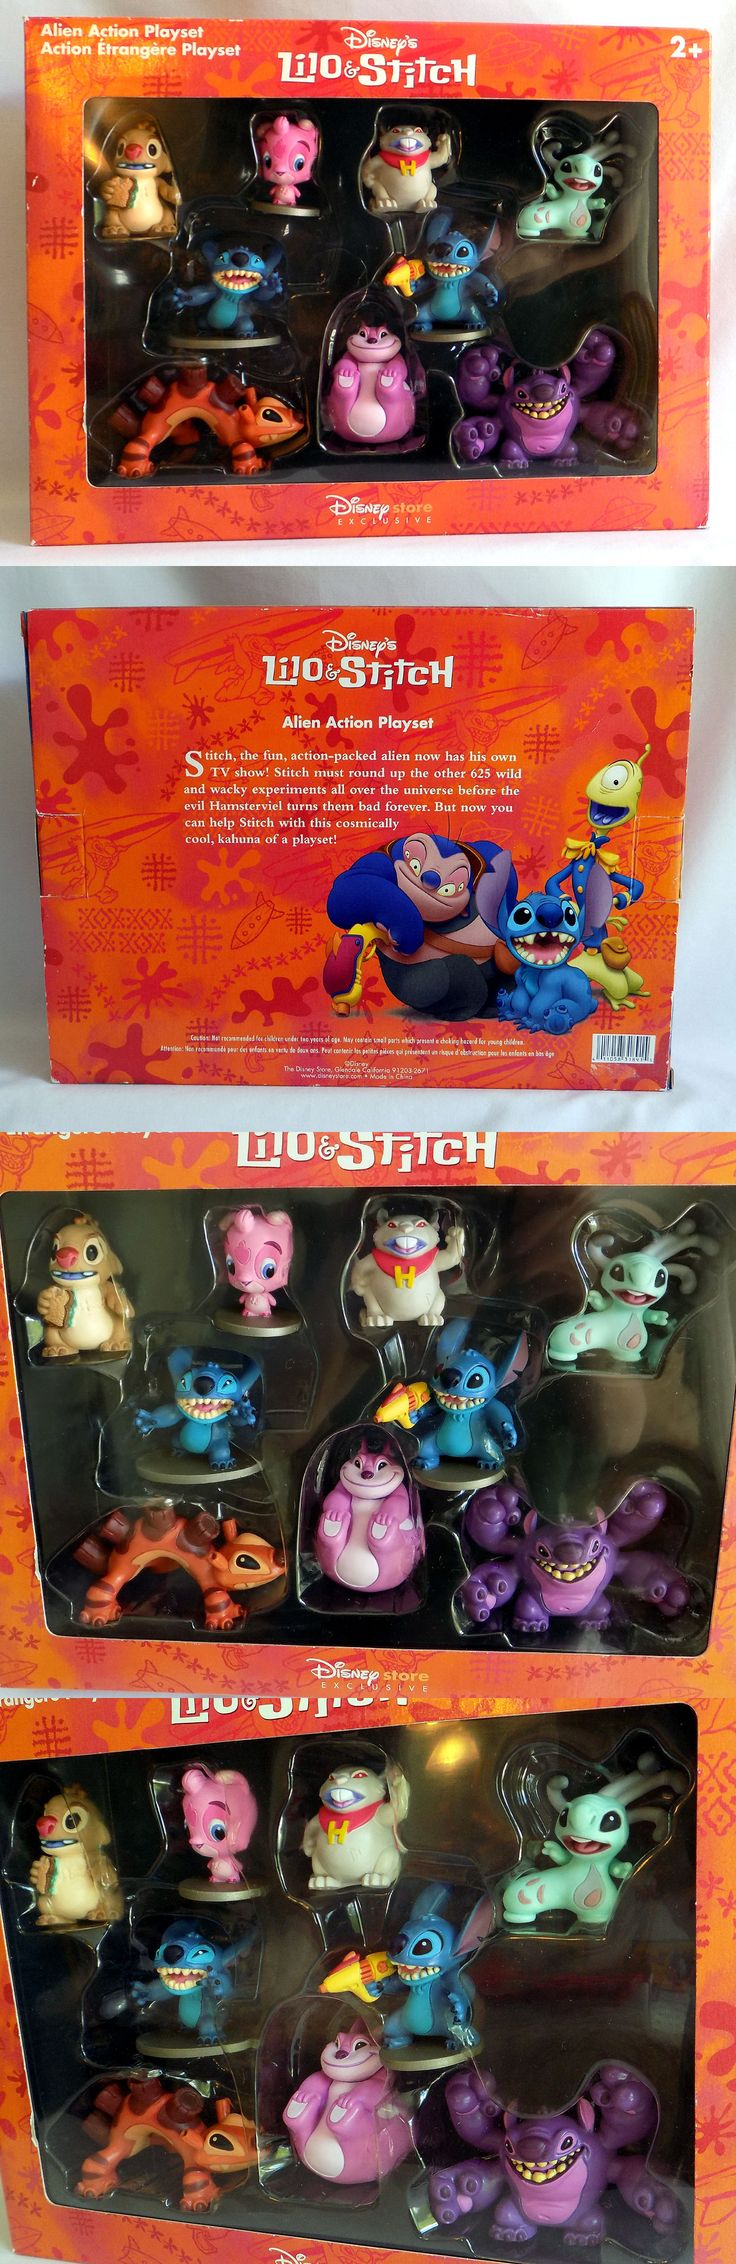 Lilo and Stitch 44035: Disney Exclusive Lilo And Stitch 9 Alien Figures Set Toy ~ Rare - New! Yang -> BUY IT NOW ONLY: $89.63 on eBay!